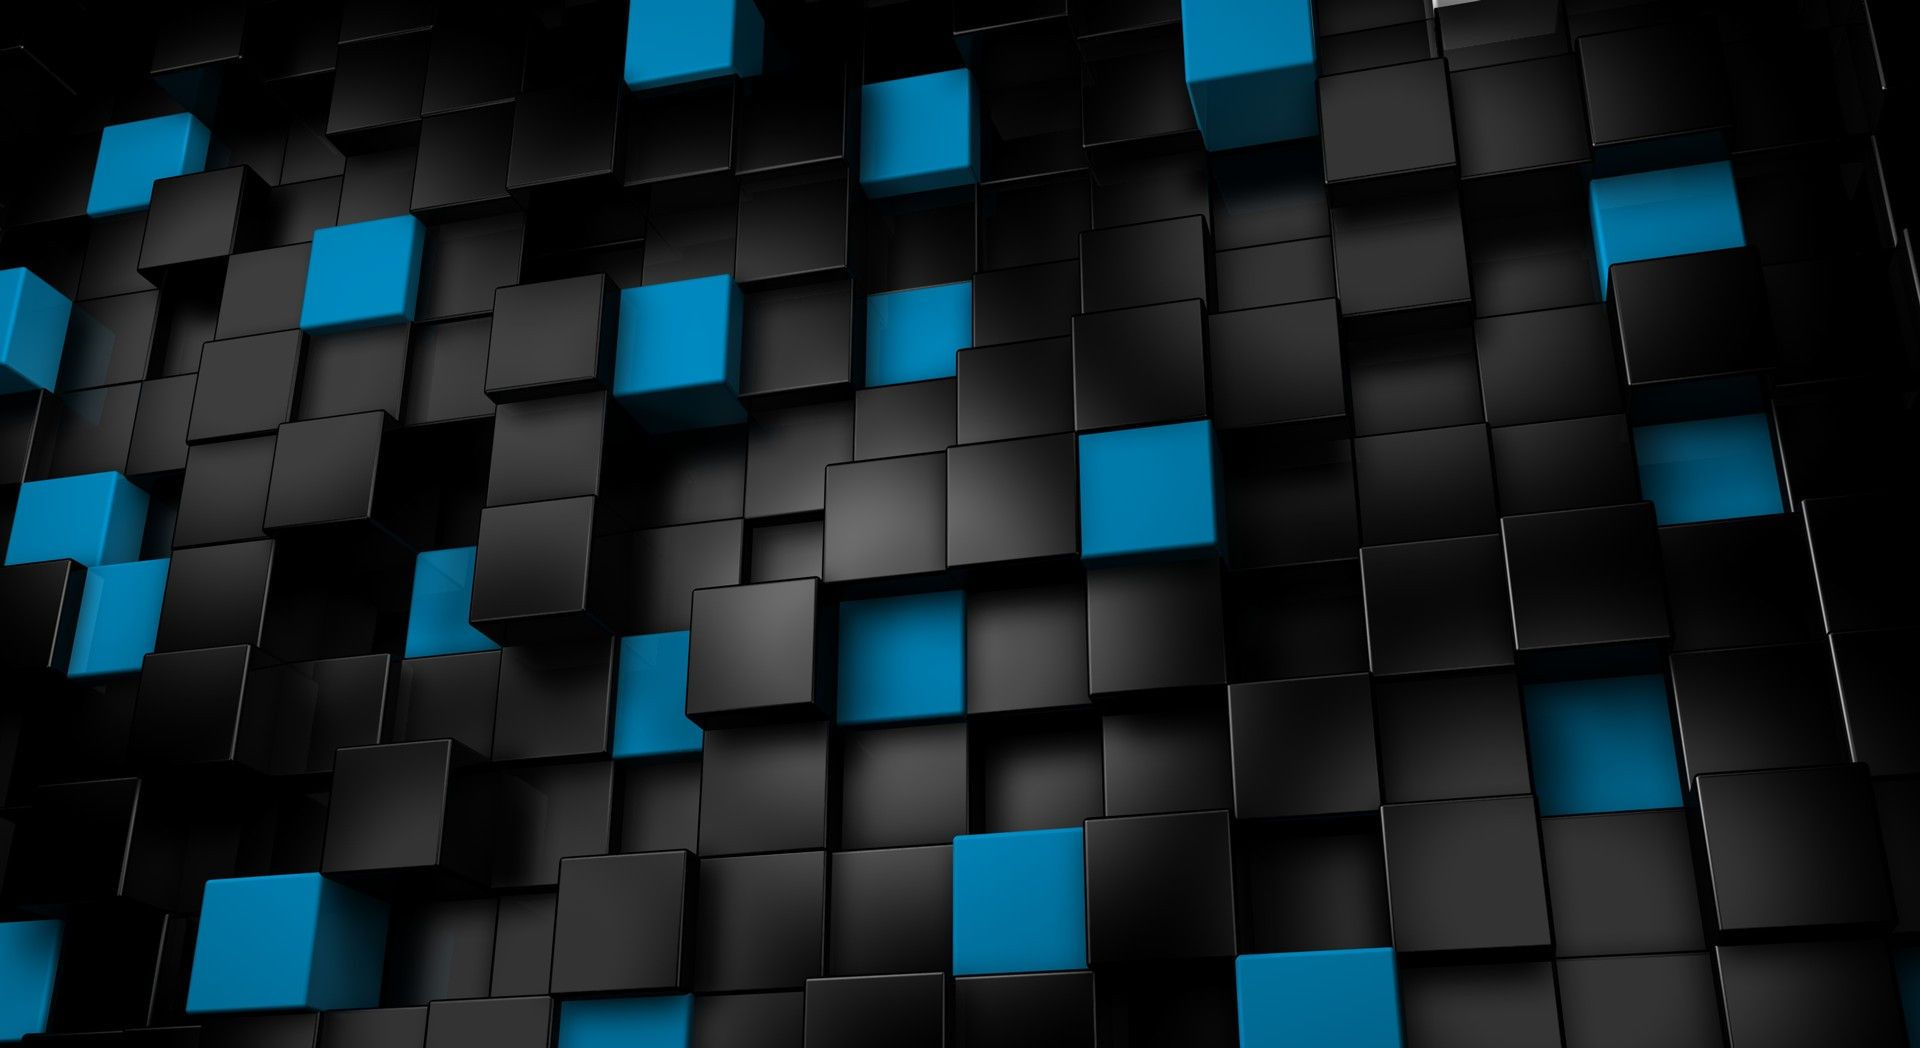 Hd 3d Wallpapers 1080p Black And Blue Wallpaper Cool Blue Wallpaper Black Wallpaper